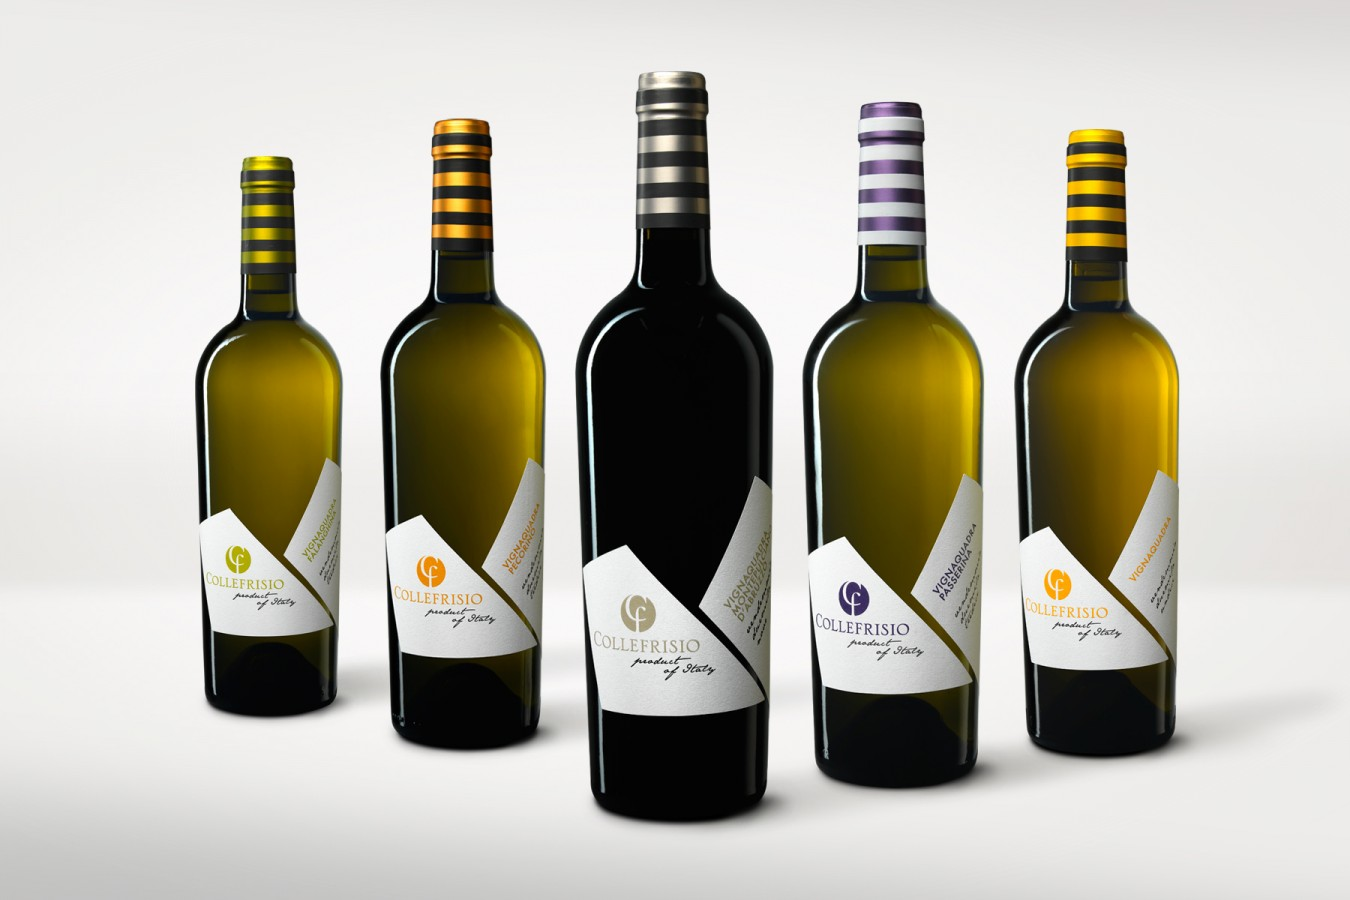 spaziodipaolo_collefrisio_vini_packaging_1